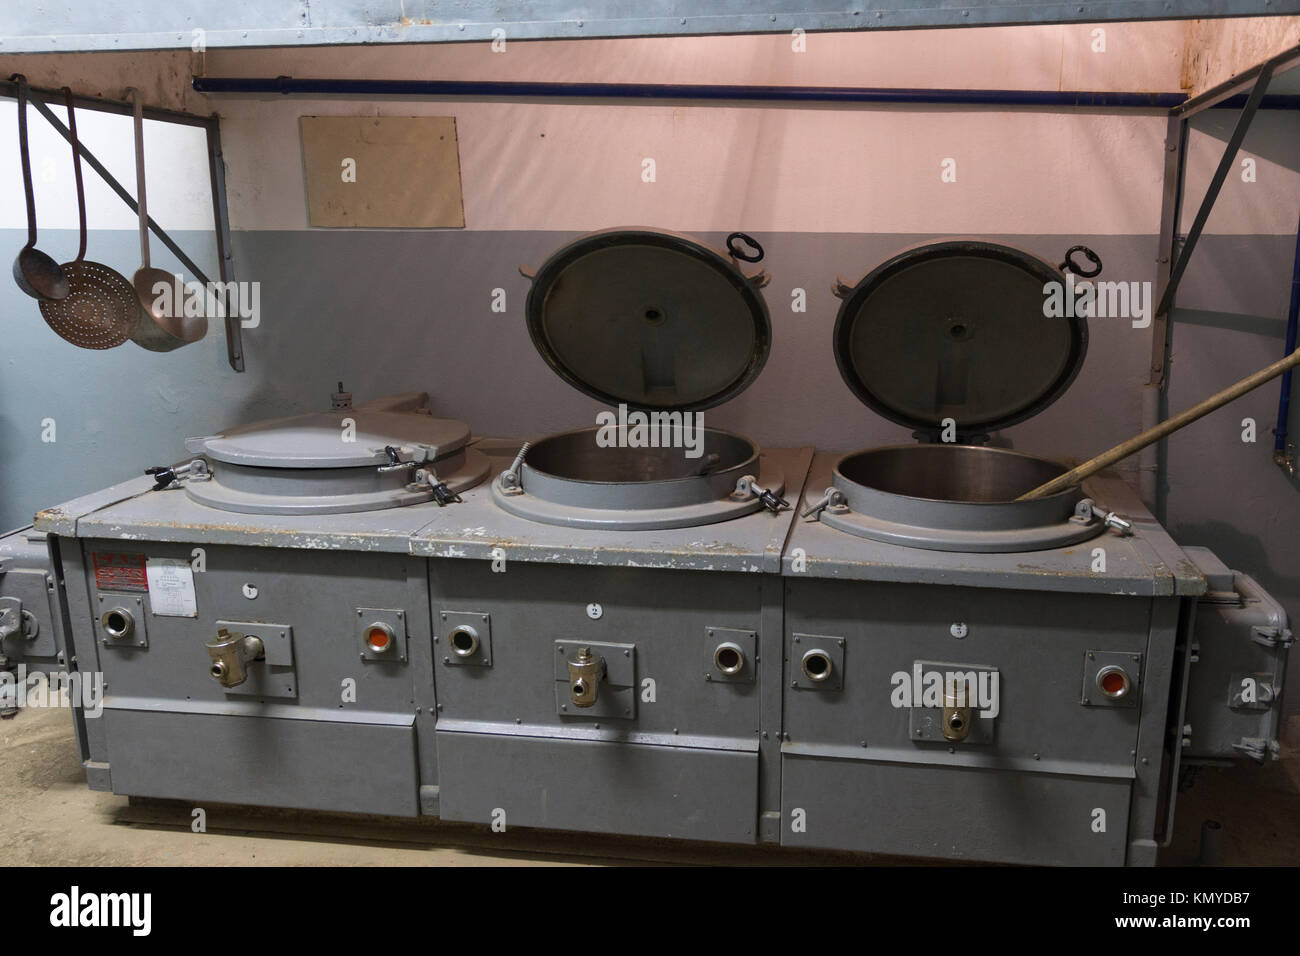 Industrial size cookers in a kitchen at the Maginot Line site of Four à Chaux de Lembach, Alsace - Stock Image